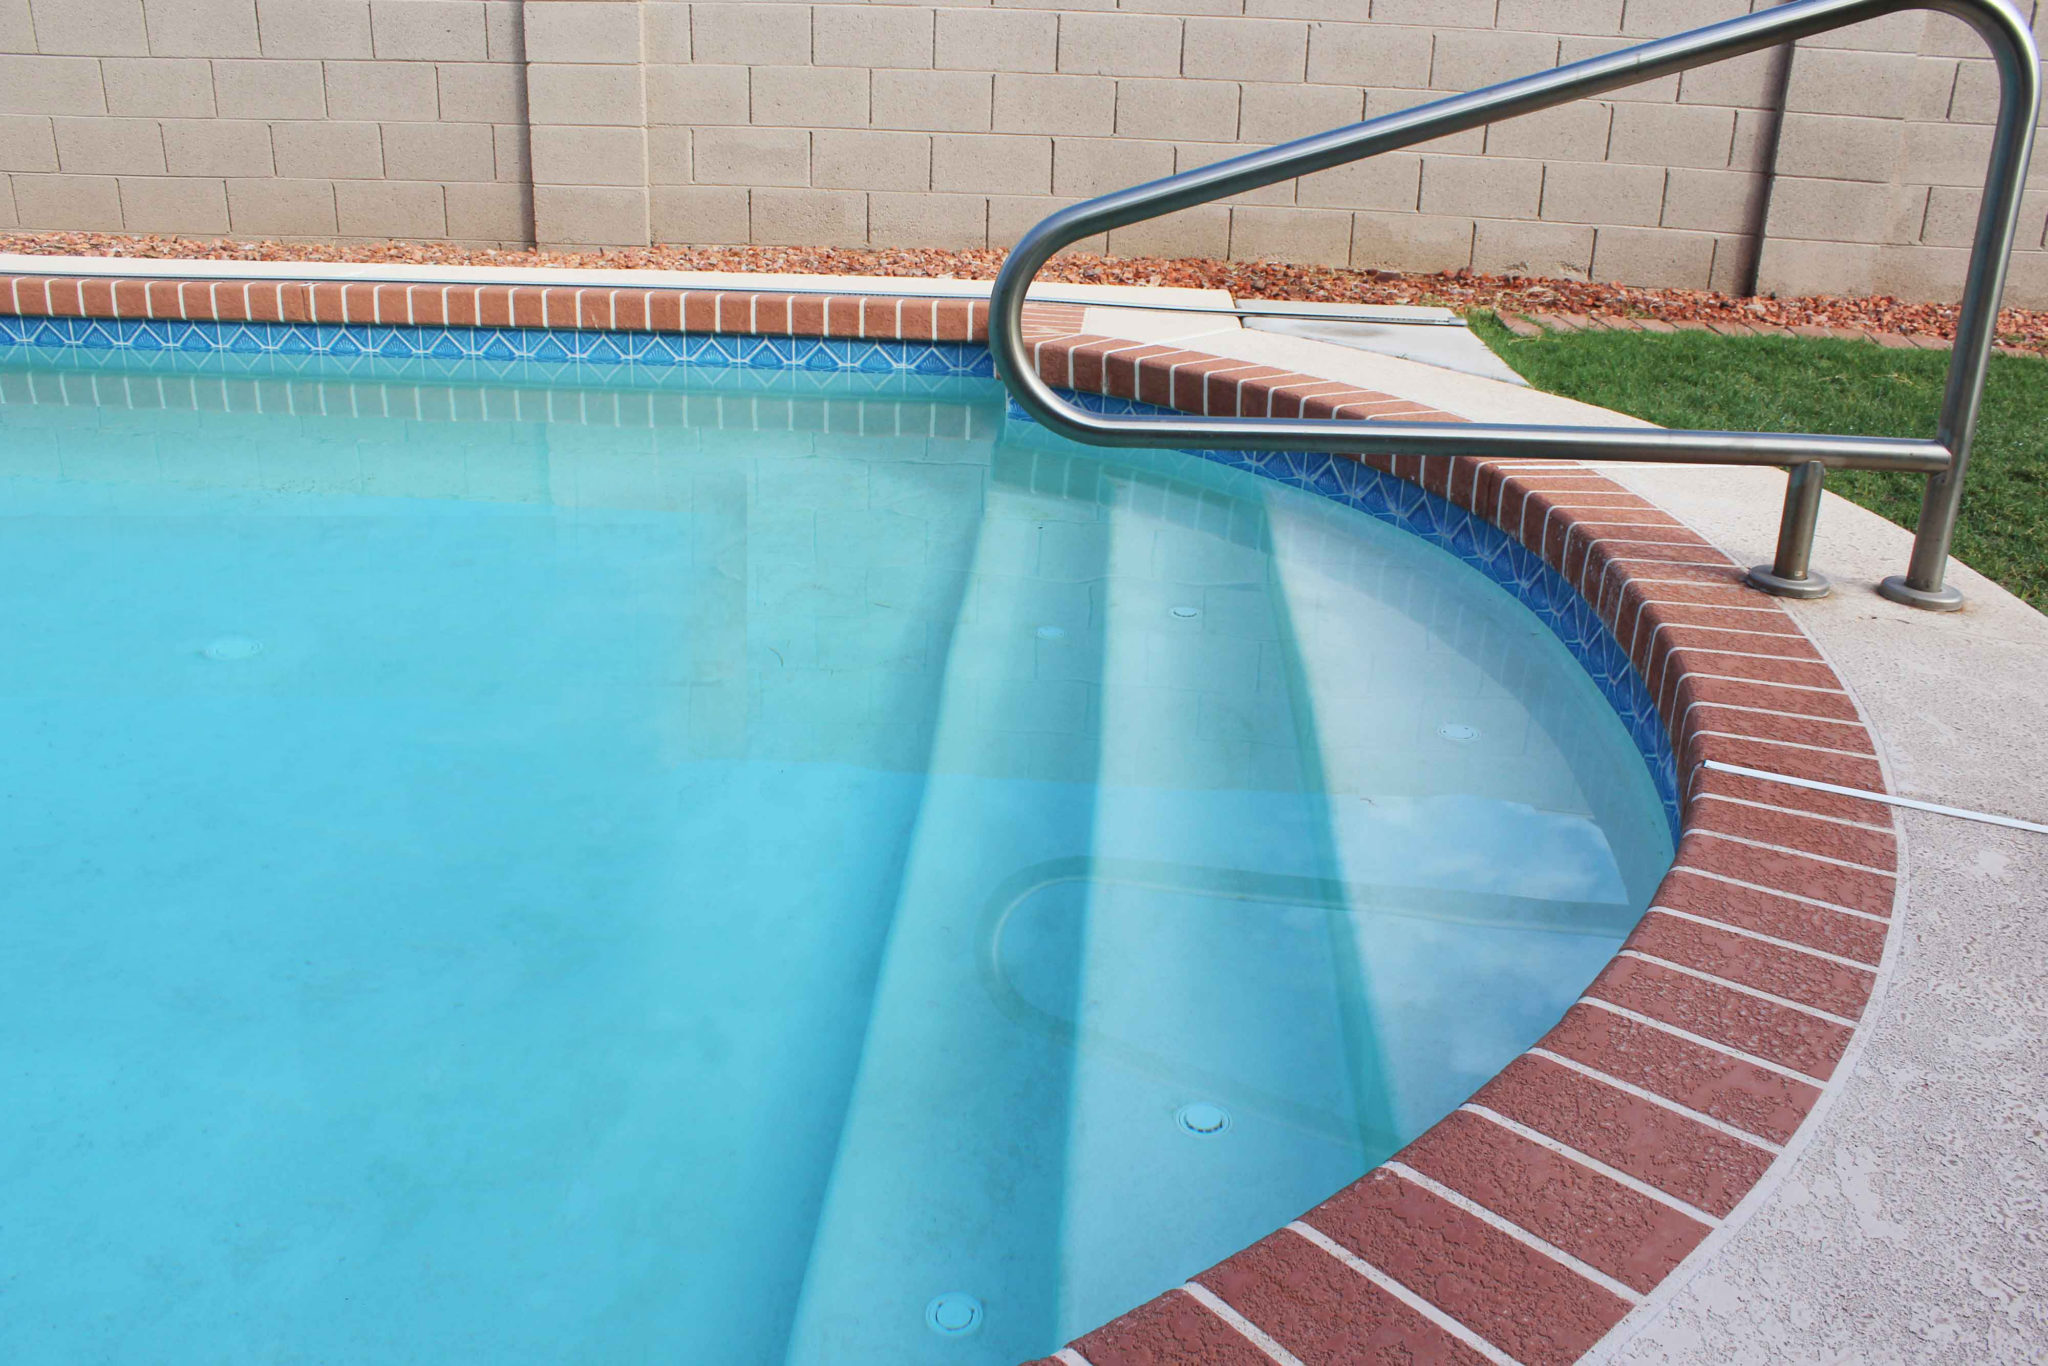 Swimming Pool Stains : The most annoying swimming pool stain and how to prevent it